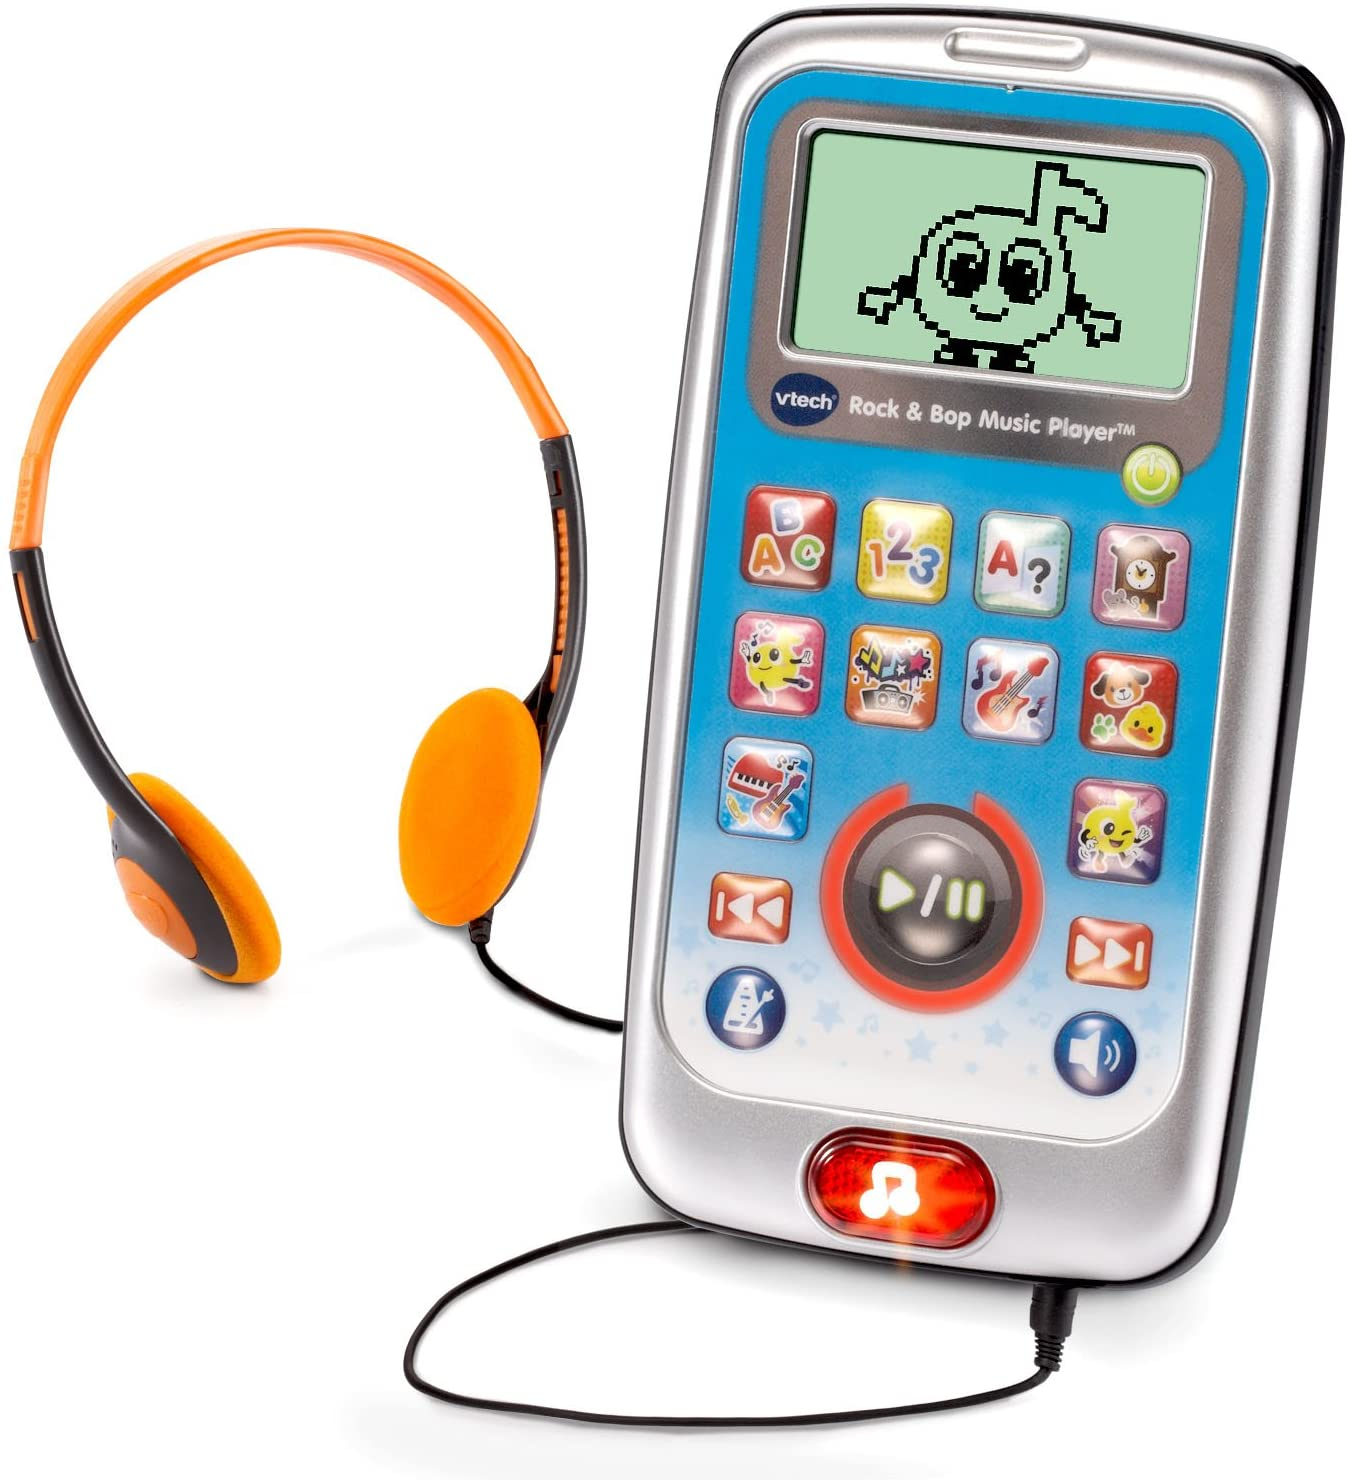 Top 10 Best Music Player For Kids Reviews in 2021